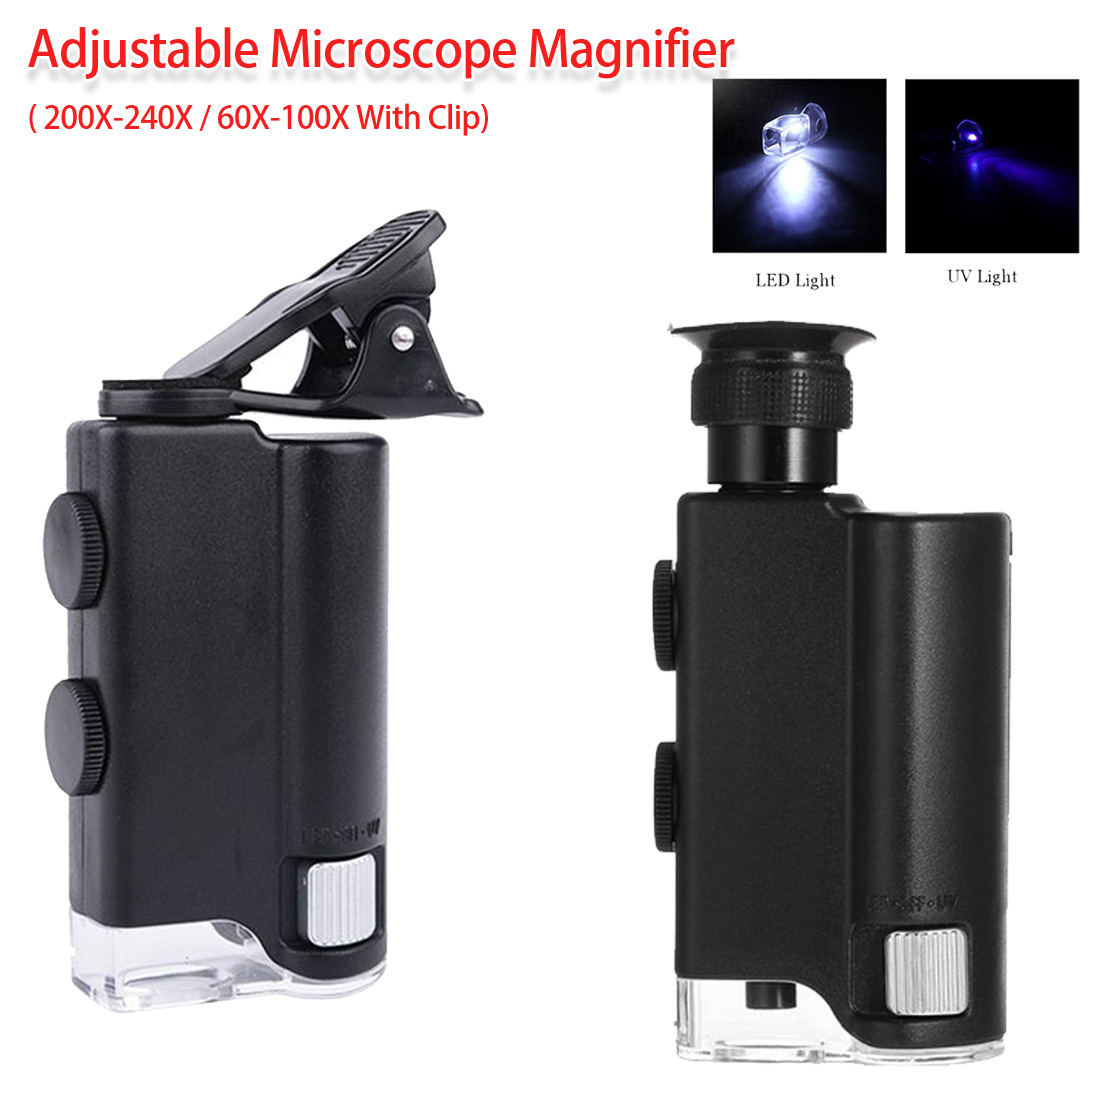 Mini Handheld 60-100X/ 200-240X Adjustable Pocket Microscope Magnifer Loupe Magnification For Archeology/ Jade Articles/ Jewelry